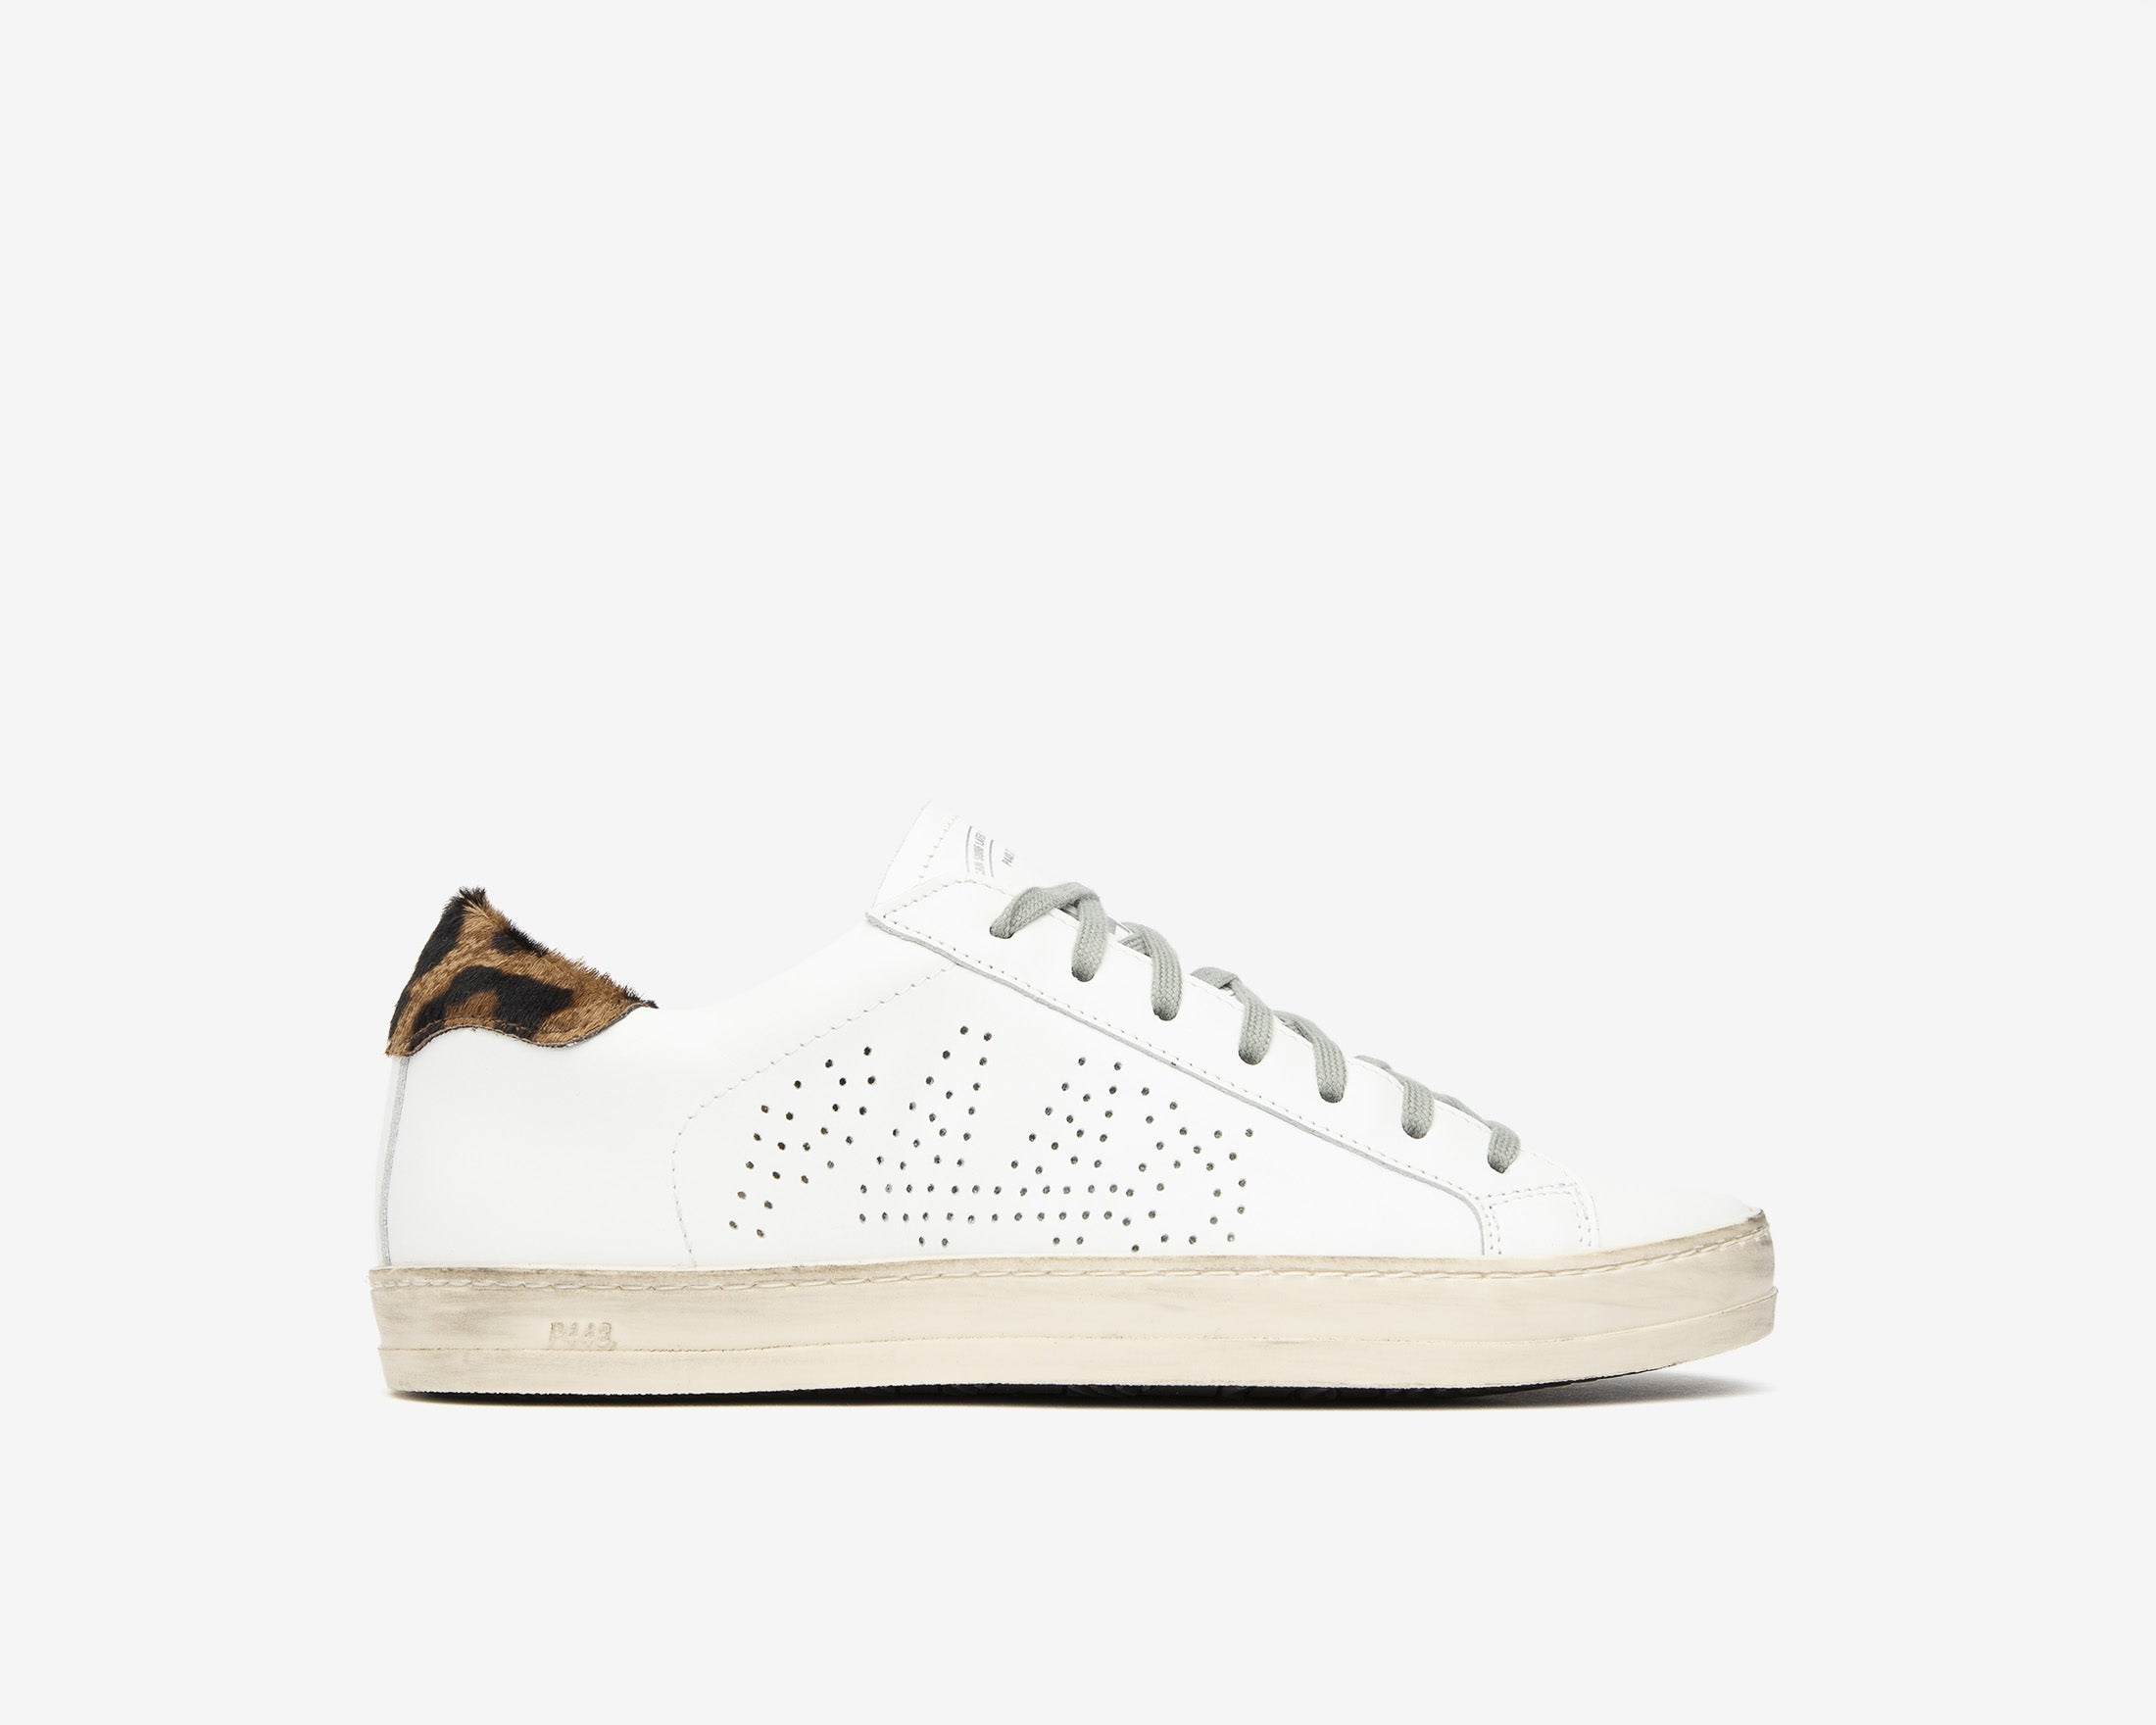 John Low-Top Sneaker in White/Cleo - Profile